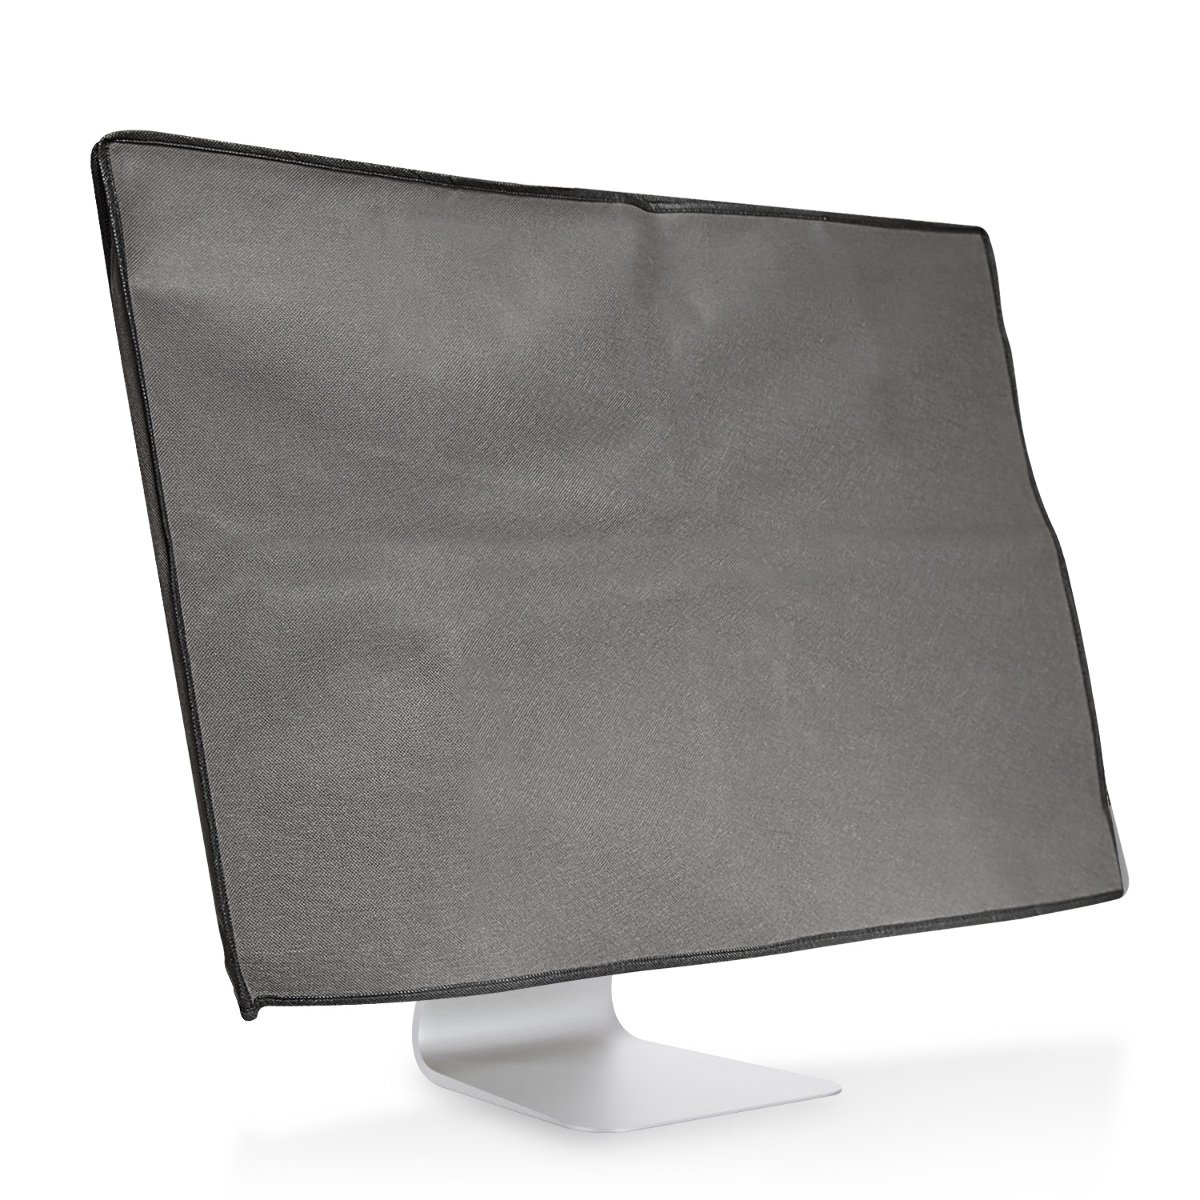 kwmobile Monitor Cover for 24-26 Monitor - Dust Cover PC Monitor Case Screen Display Protector - Dark Grey KW-Commerce 42629.19